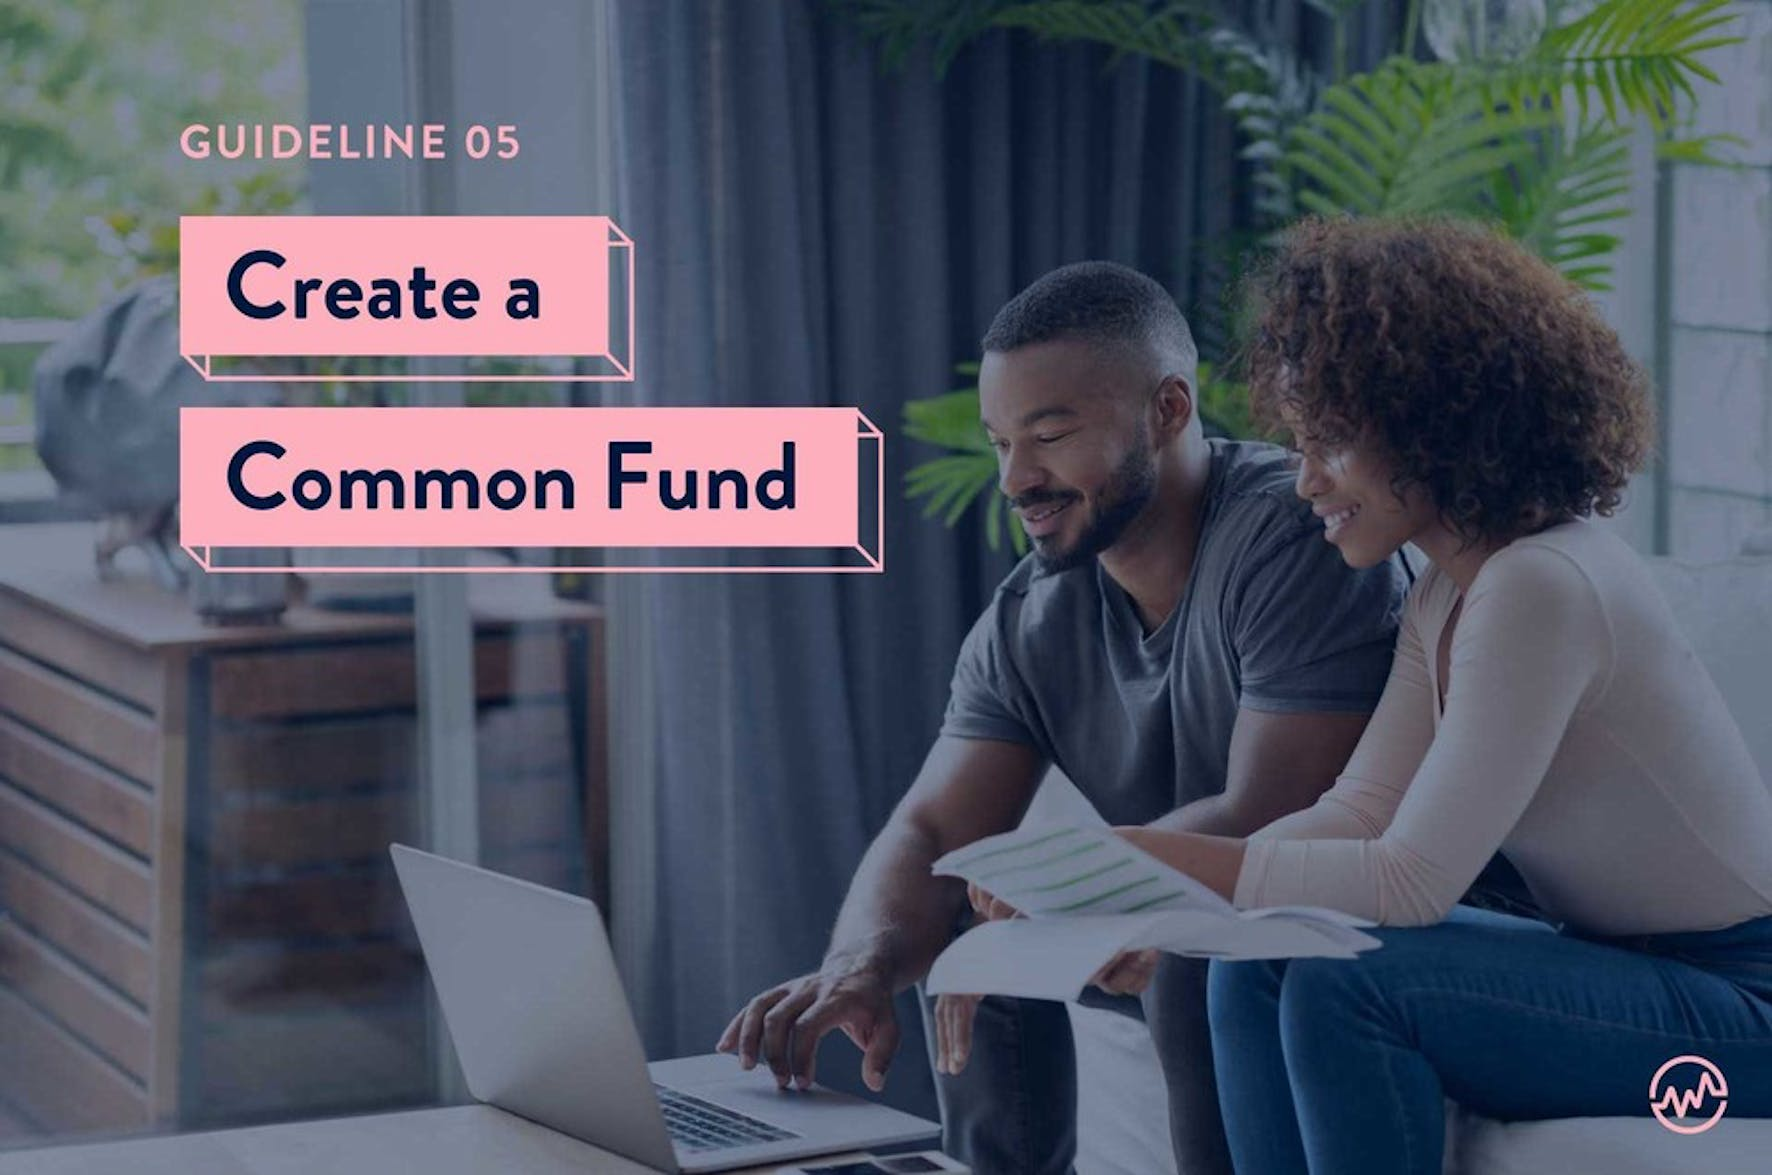 Two friends looking at a computer discussing creating a common fund for buying a house together